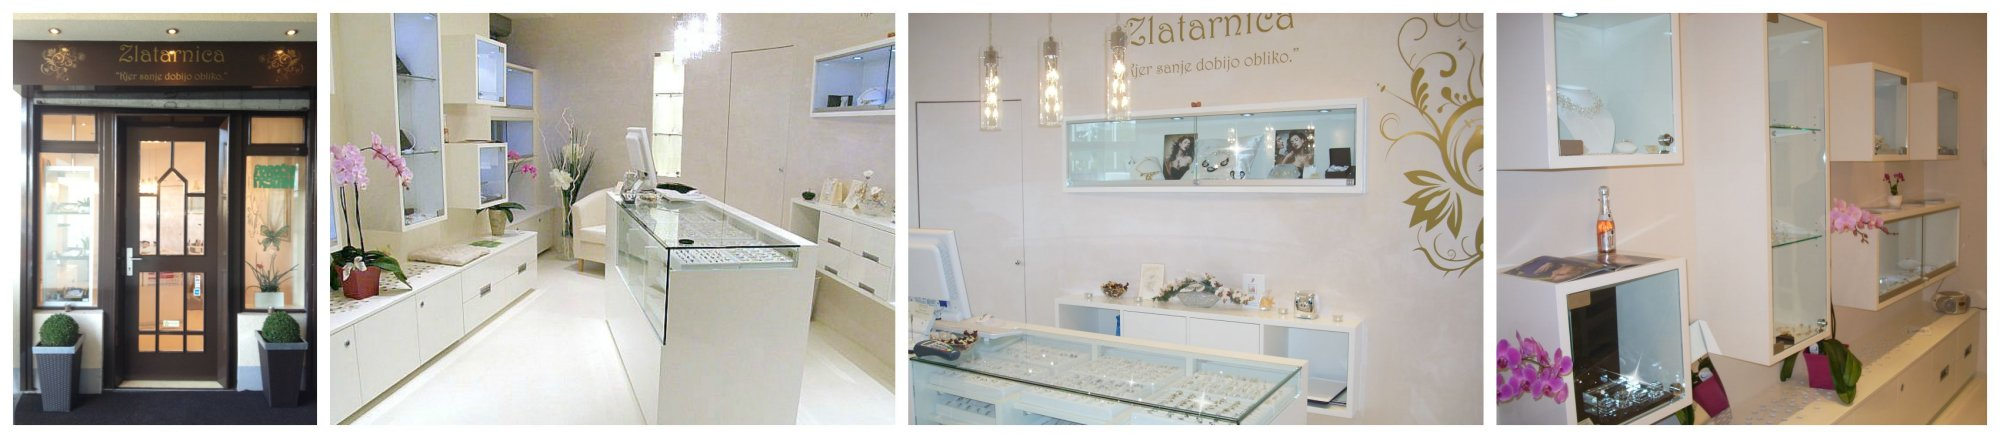 Zlatarnica showroom